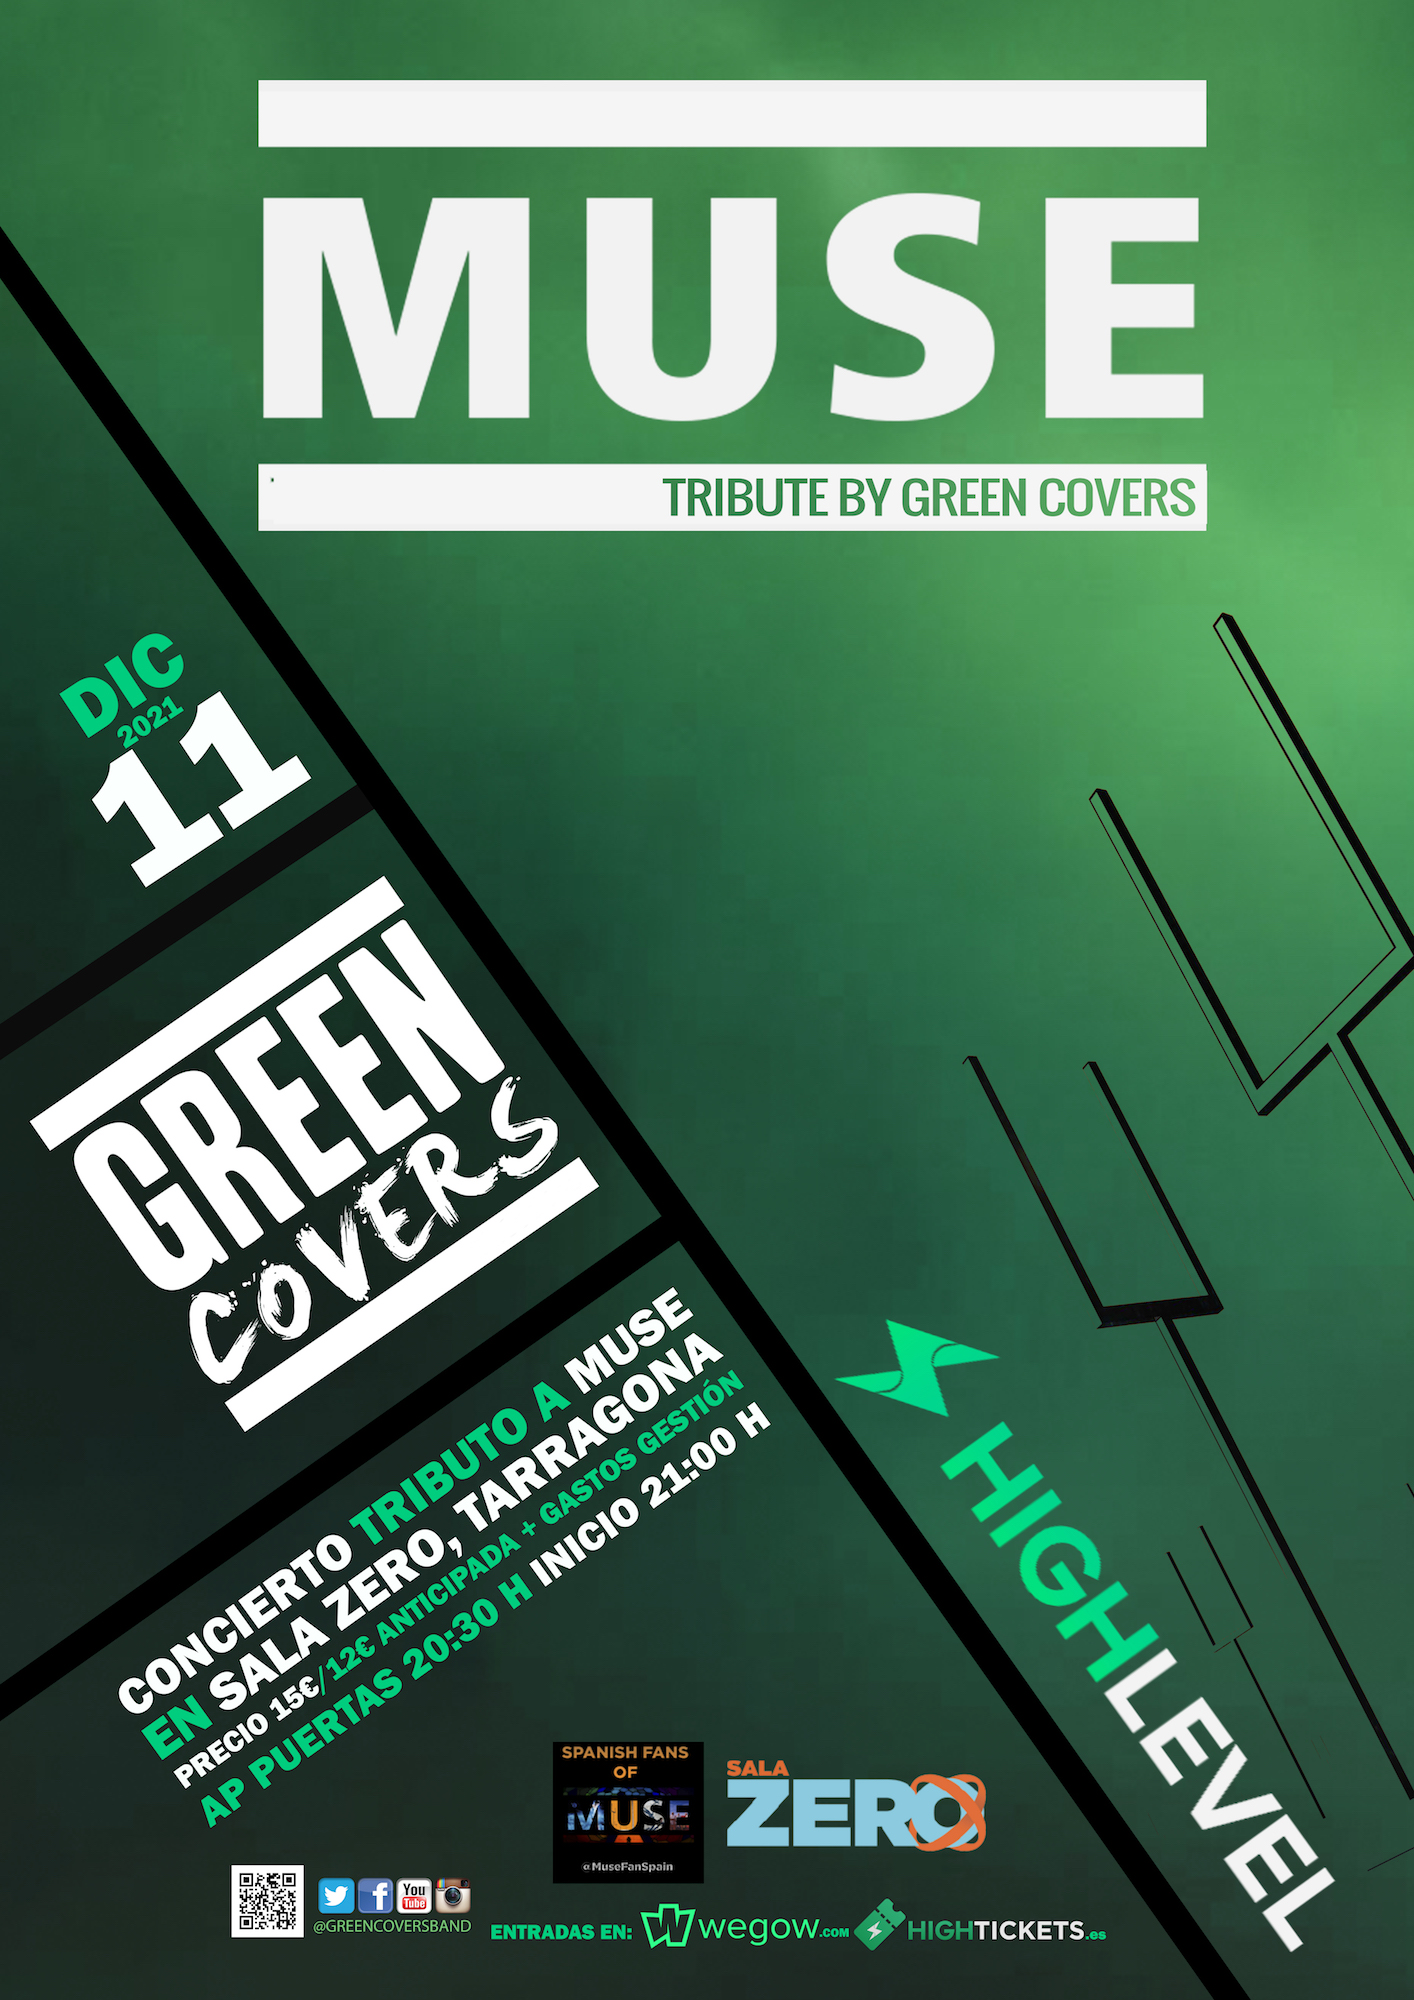 muse tribute by green covers tarragona 16261696763847666